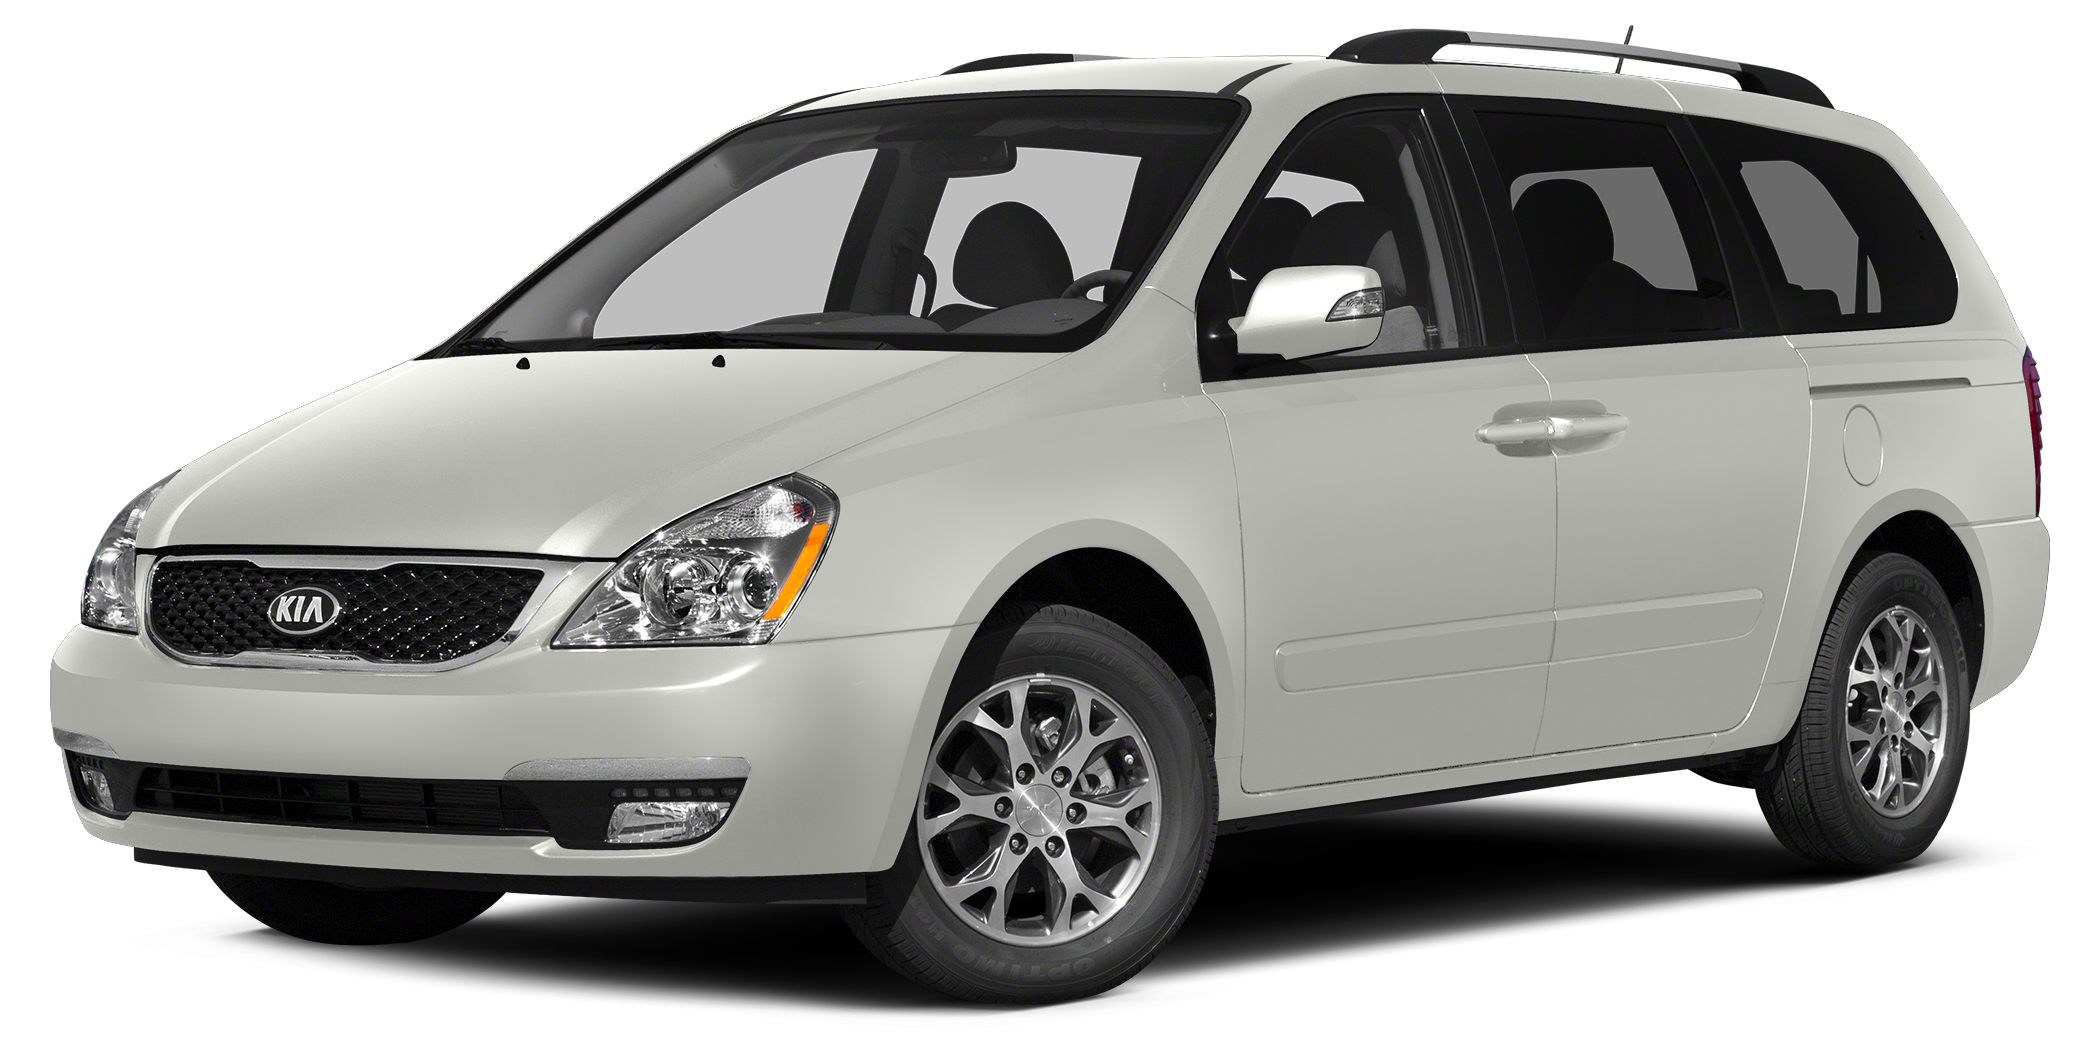 2014 Kia Sedona LX REST EASY With its 1-Owner  Buyback Qualified CARFAX report you can rest eas